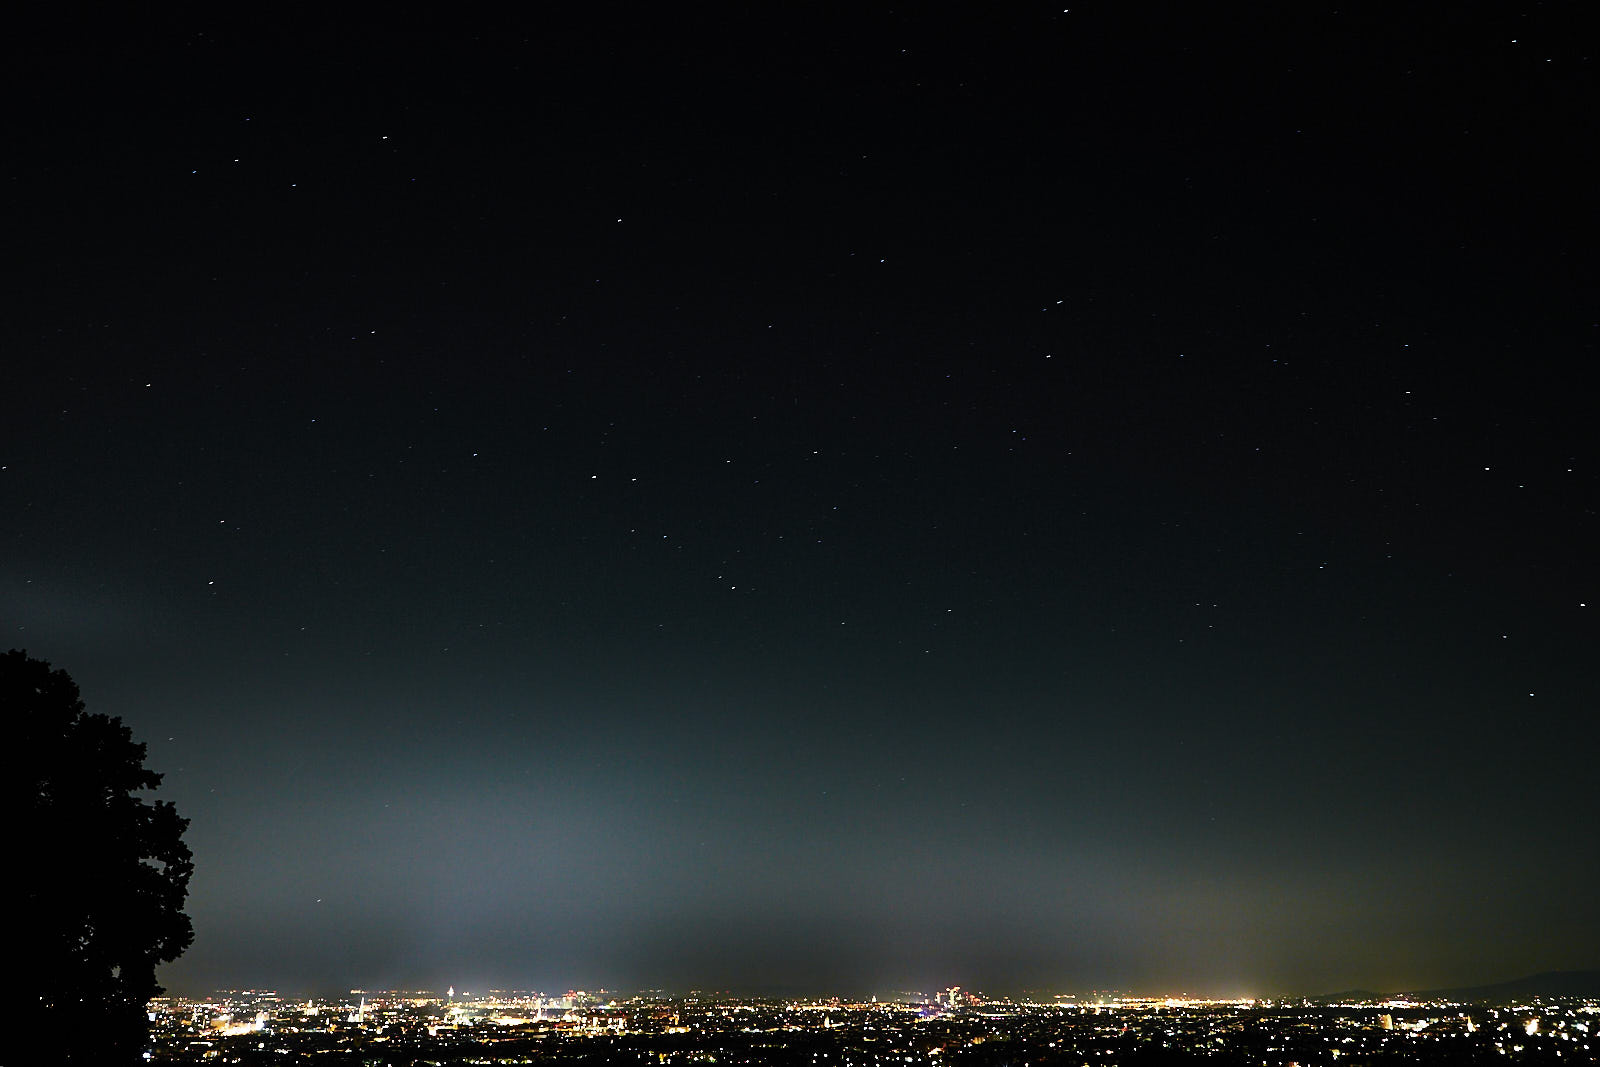 Night sky over Vienna, Austria with light pollution from city lights